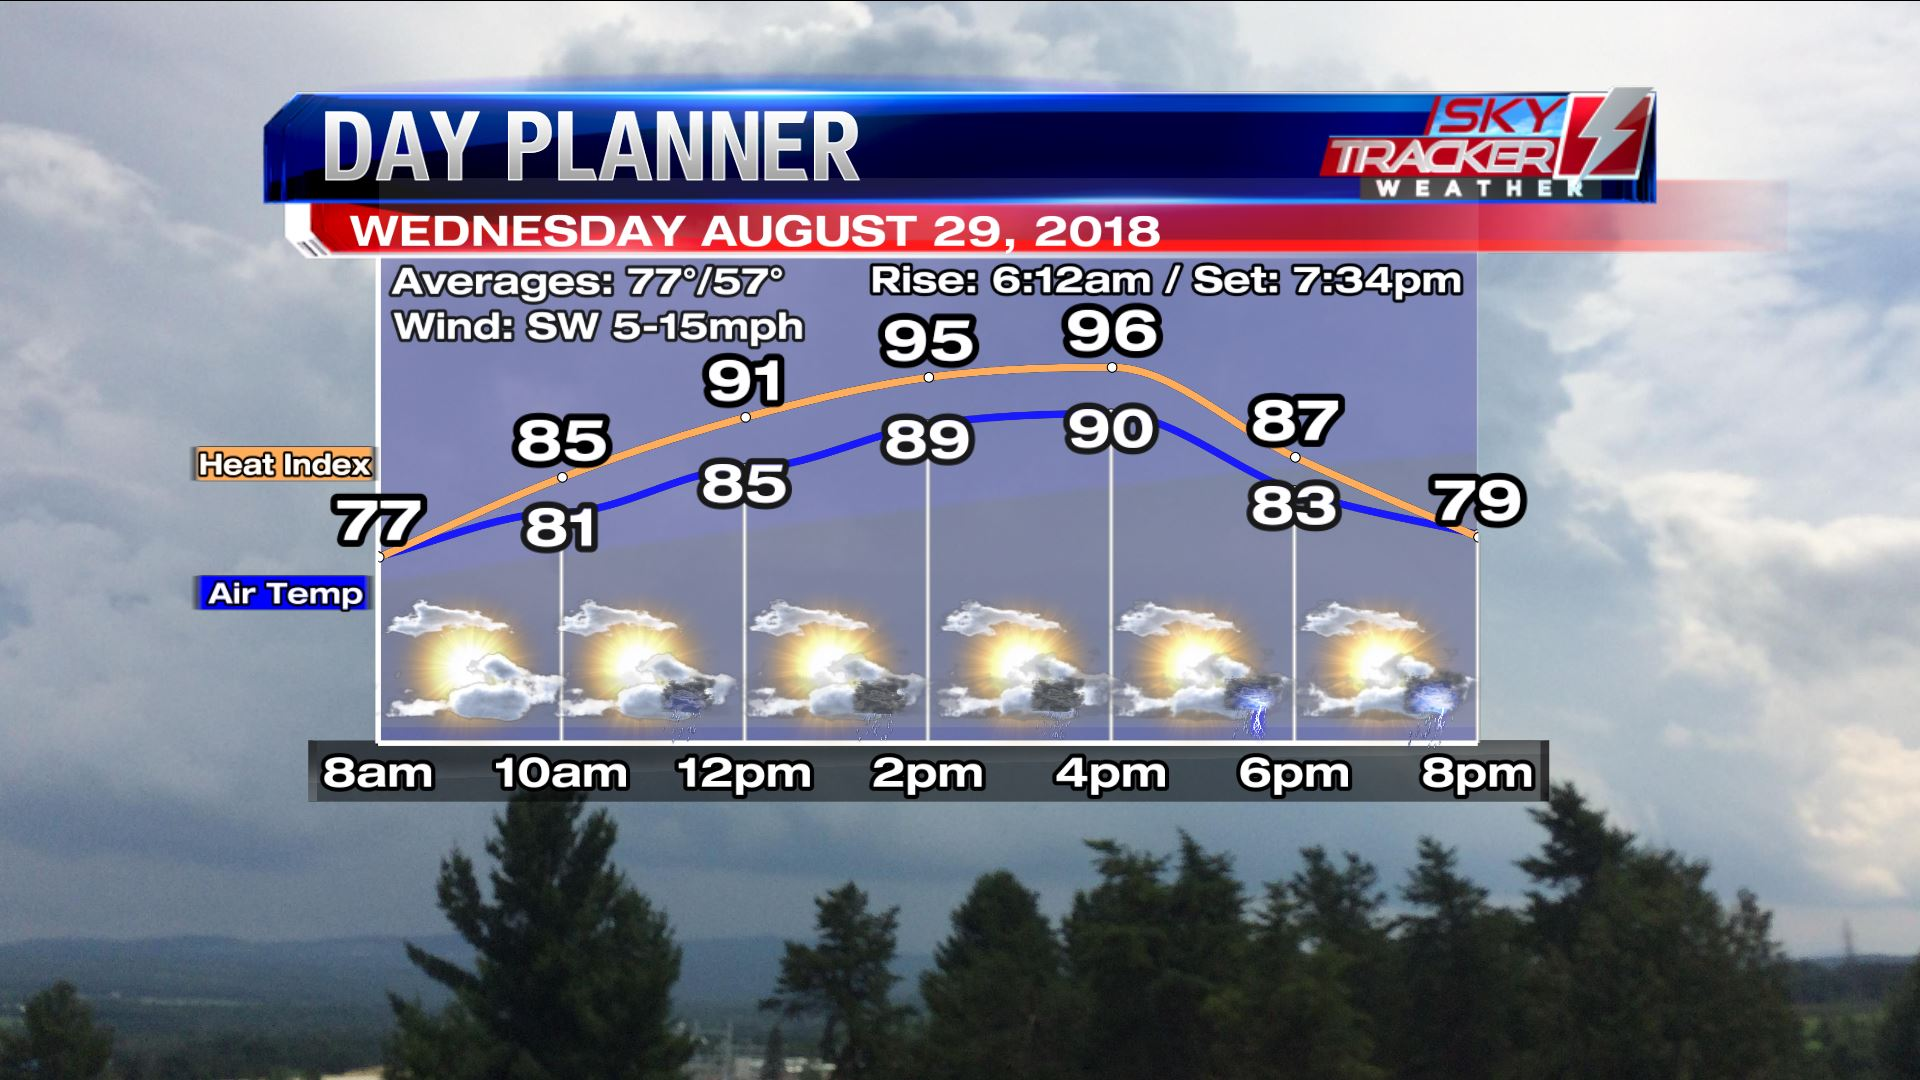 Planner for Wednesday August 29 2018